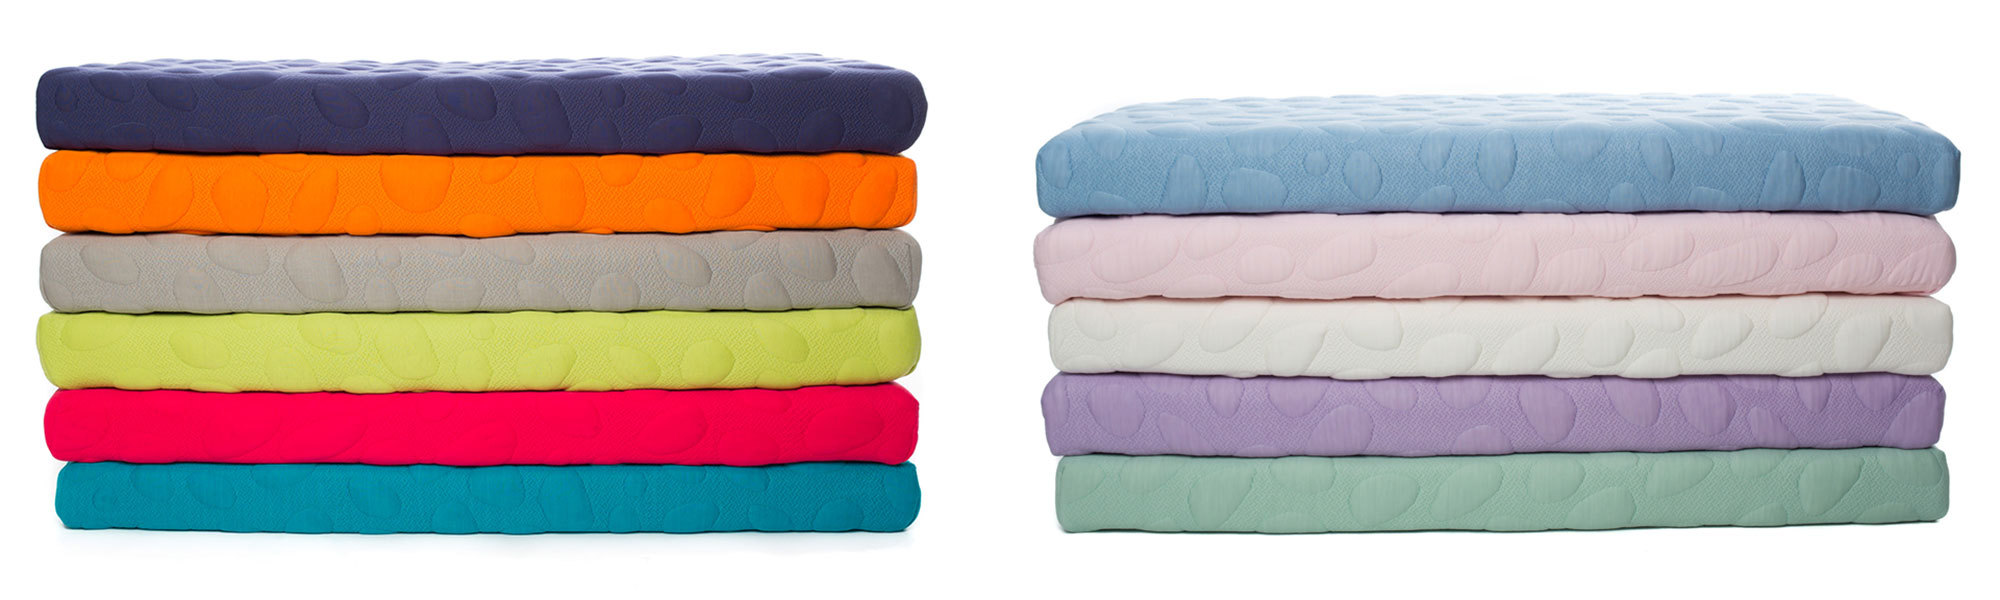 Nook Baby Products - Nook Pebble Pure Organic Non-Toxic Breathable Crib  Mattresses Color Stacks